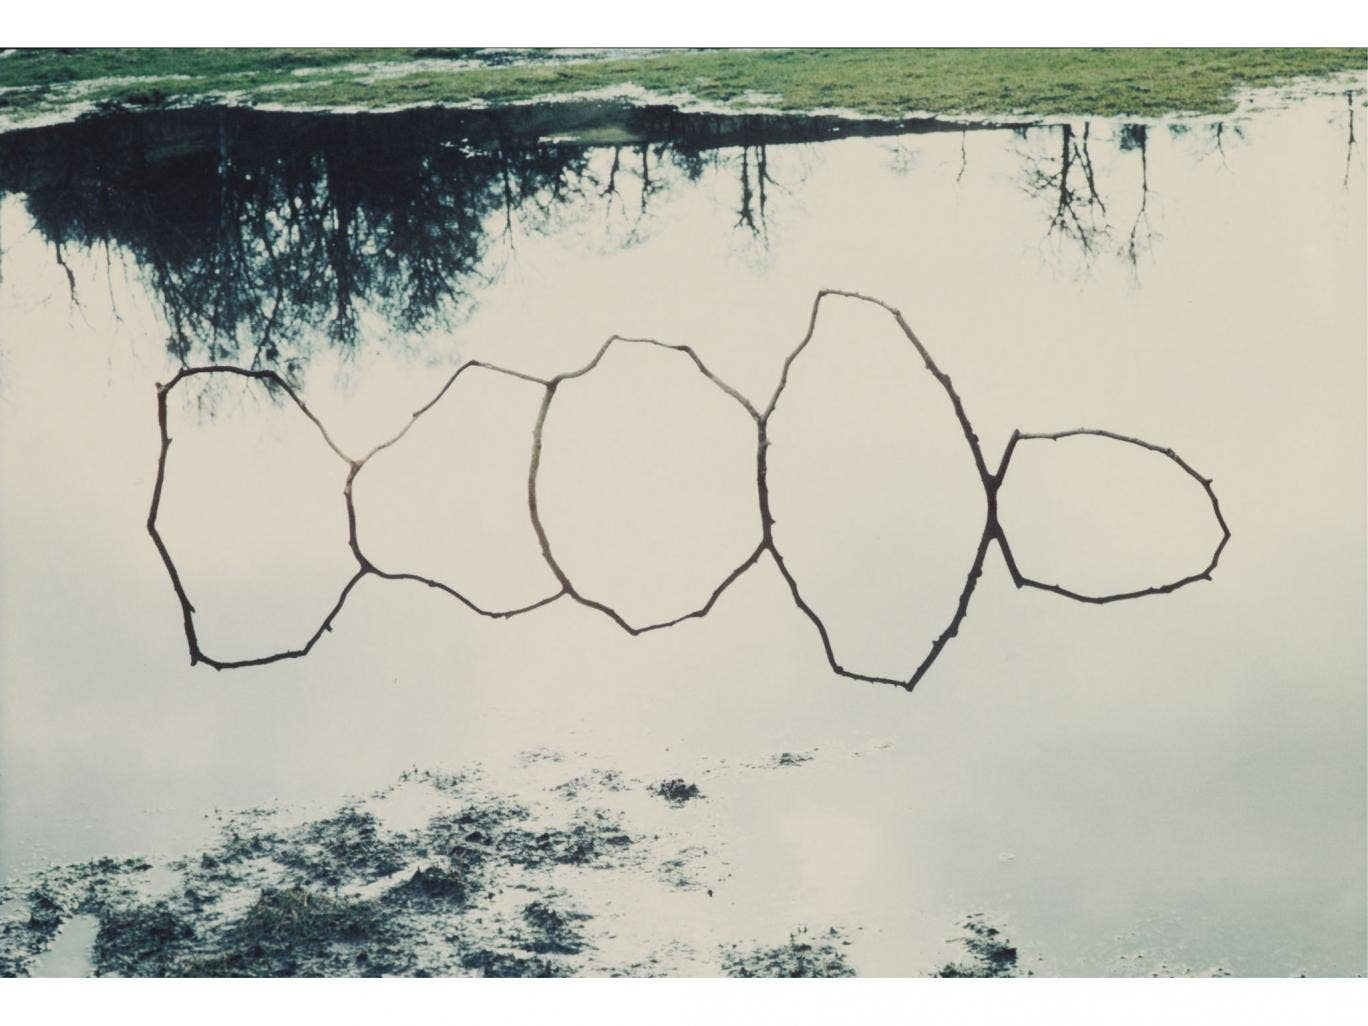 Natural-born talent: Andy Goldsworthy's Forked Twigs in Water-Bentham (1979